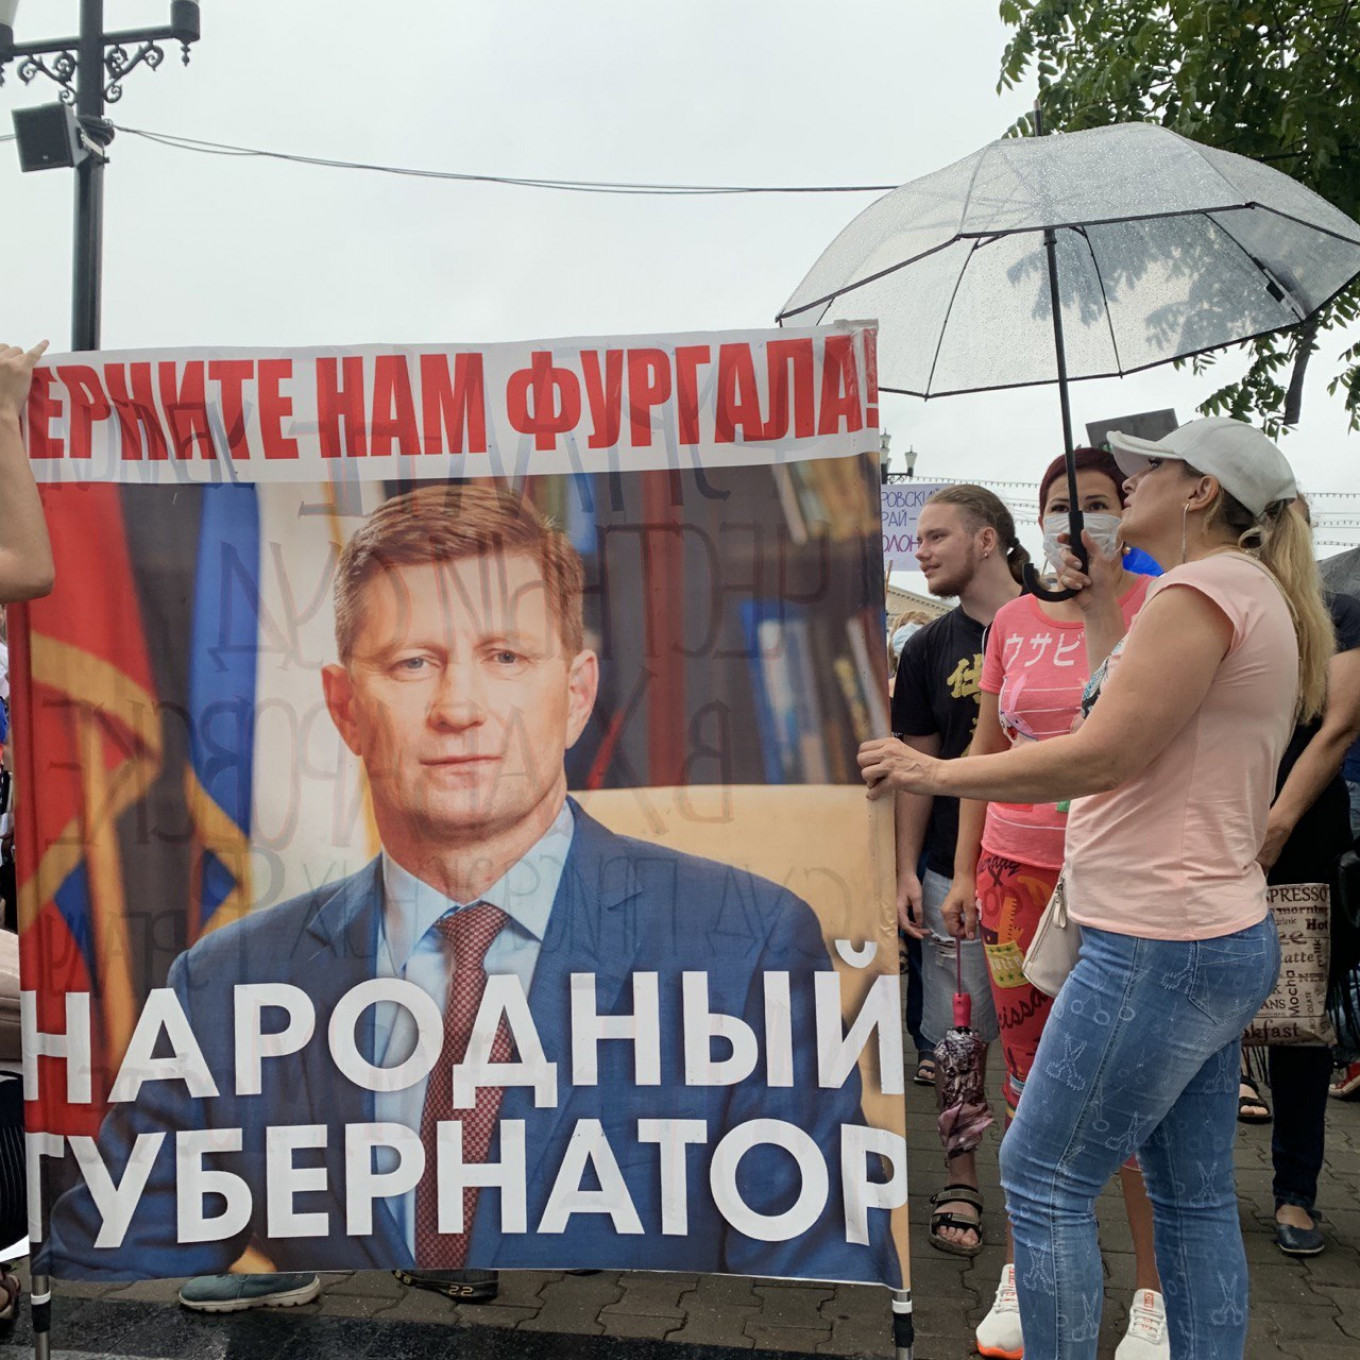 Protesters have gathered for 22 consecutive days after Khabarovsk's governor Sergei Furgal was arrested on July 10. Evan Gershkovich / MT